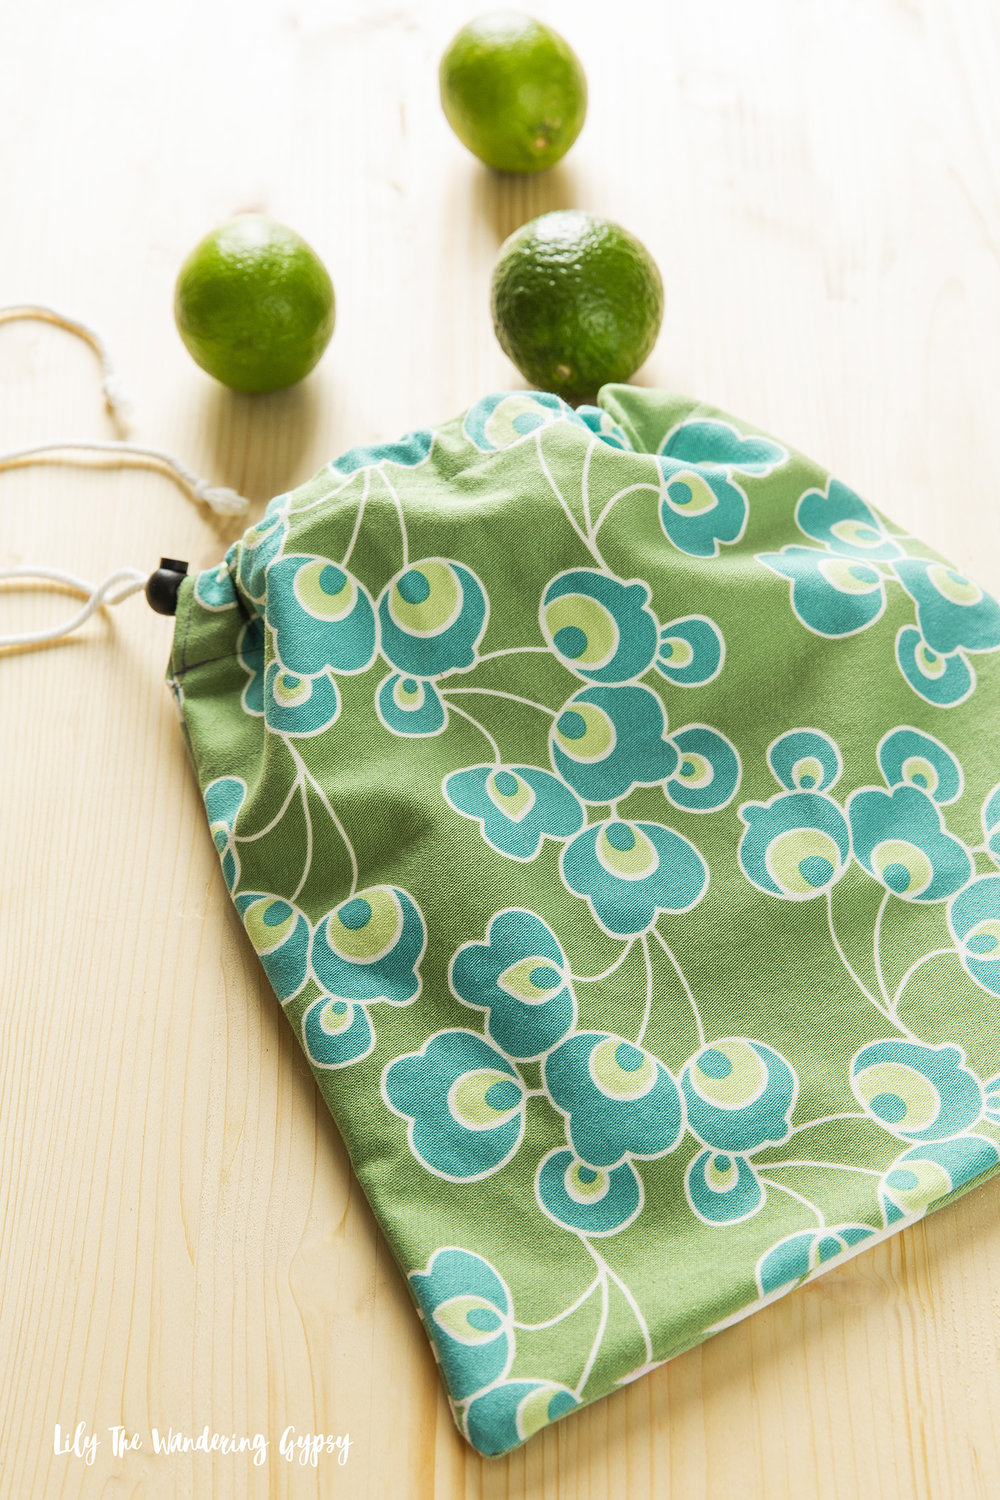 Zero Waste Reusable Produce Bags